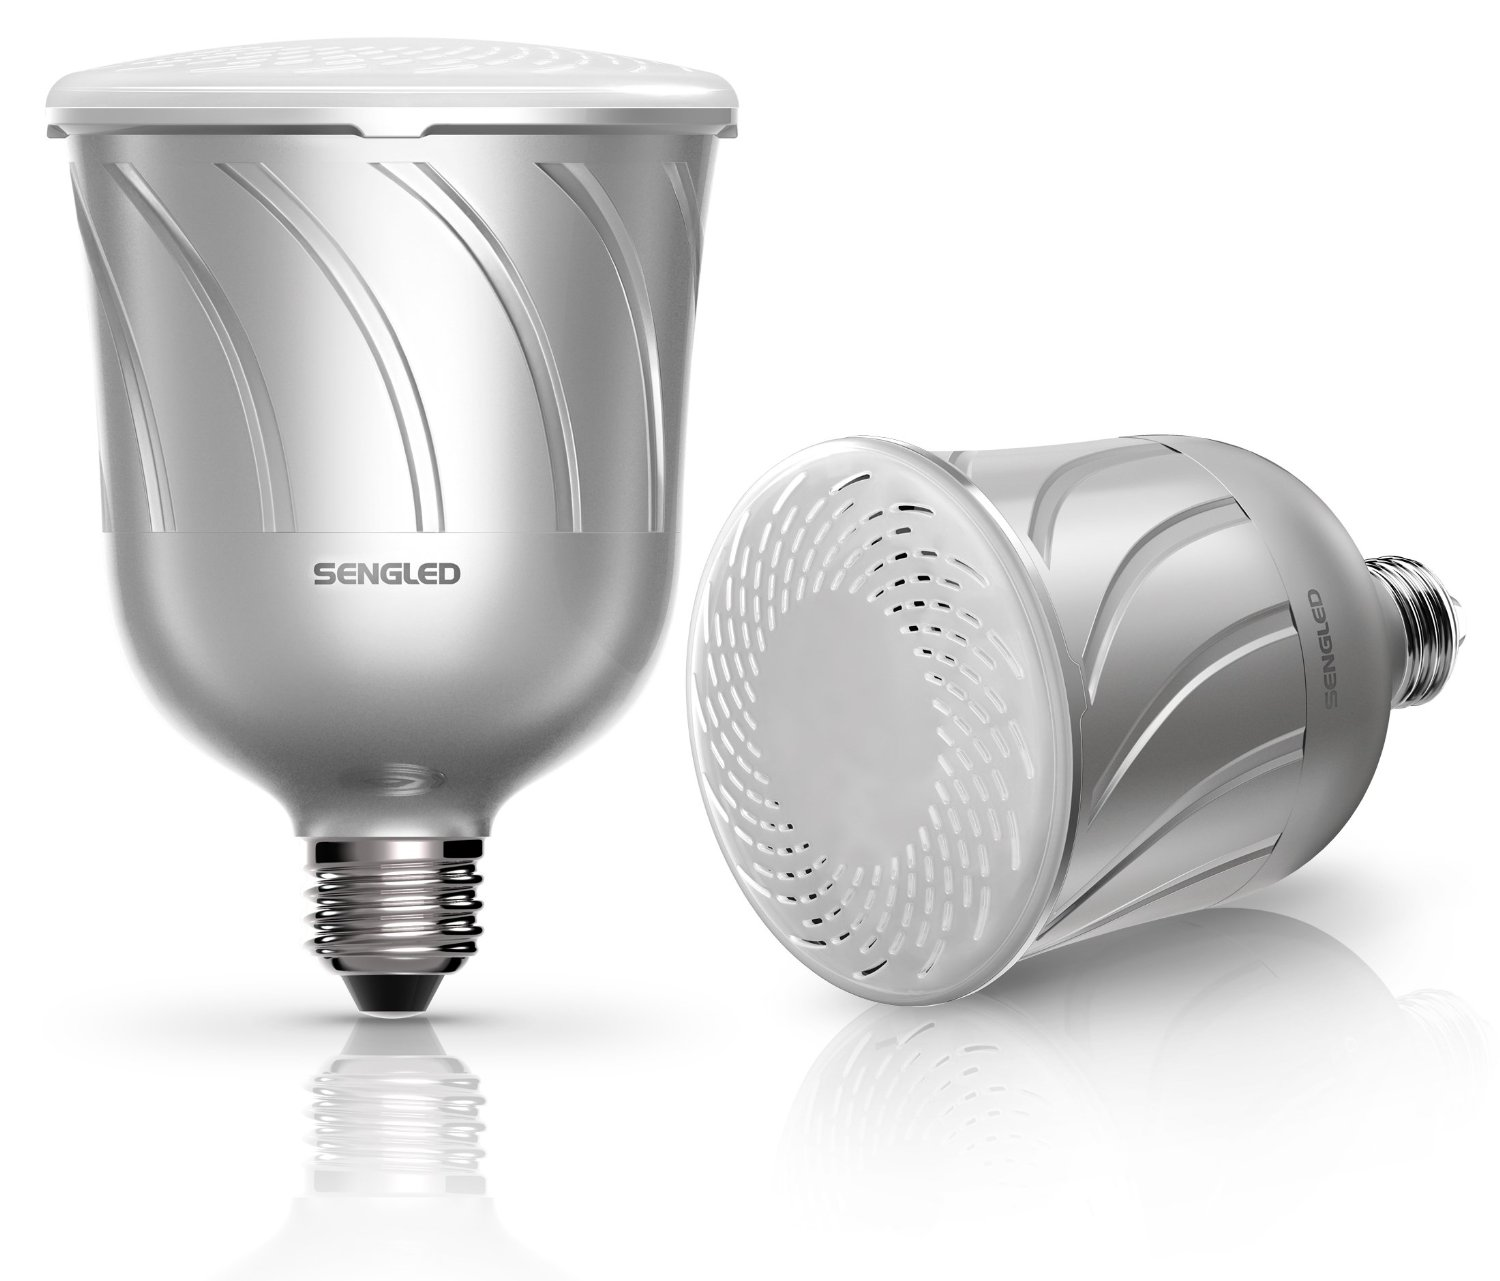 Gift idea pulse smart led light bulbs with built in jbl for Led light bulb with built in bluetooth speaker